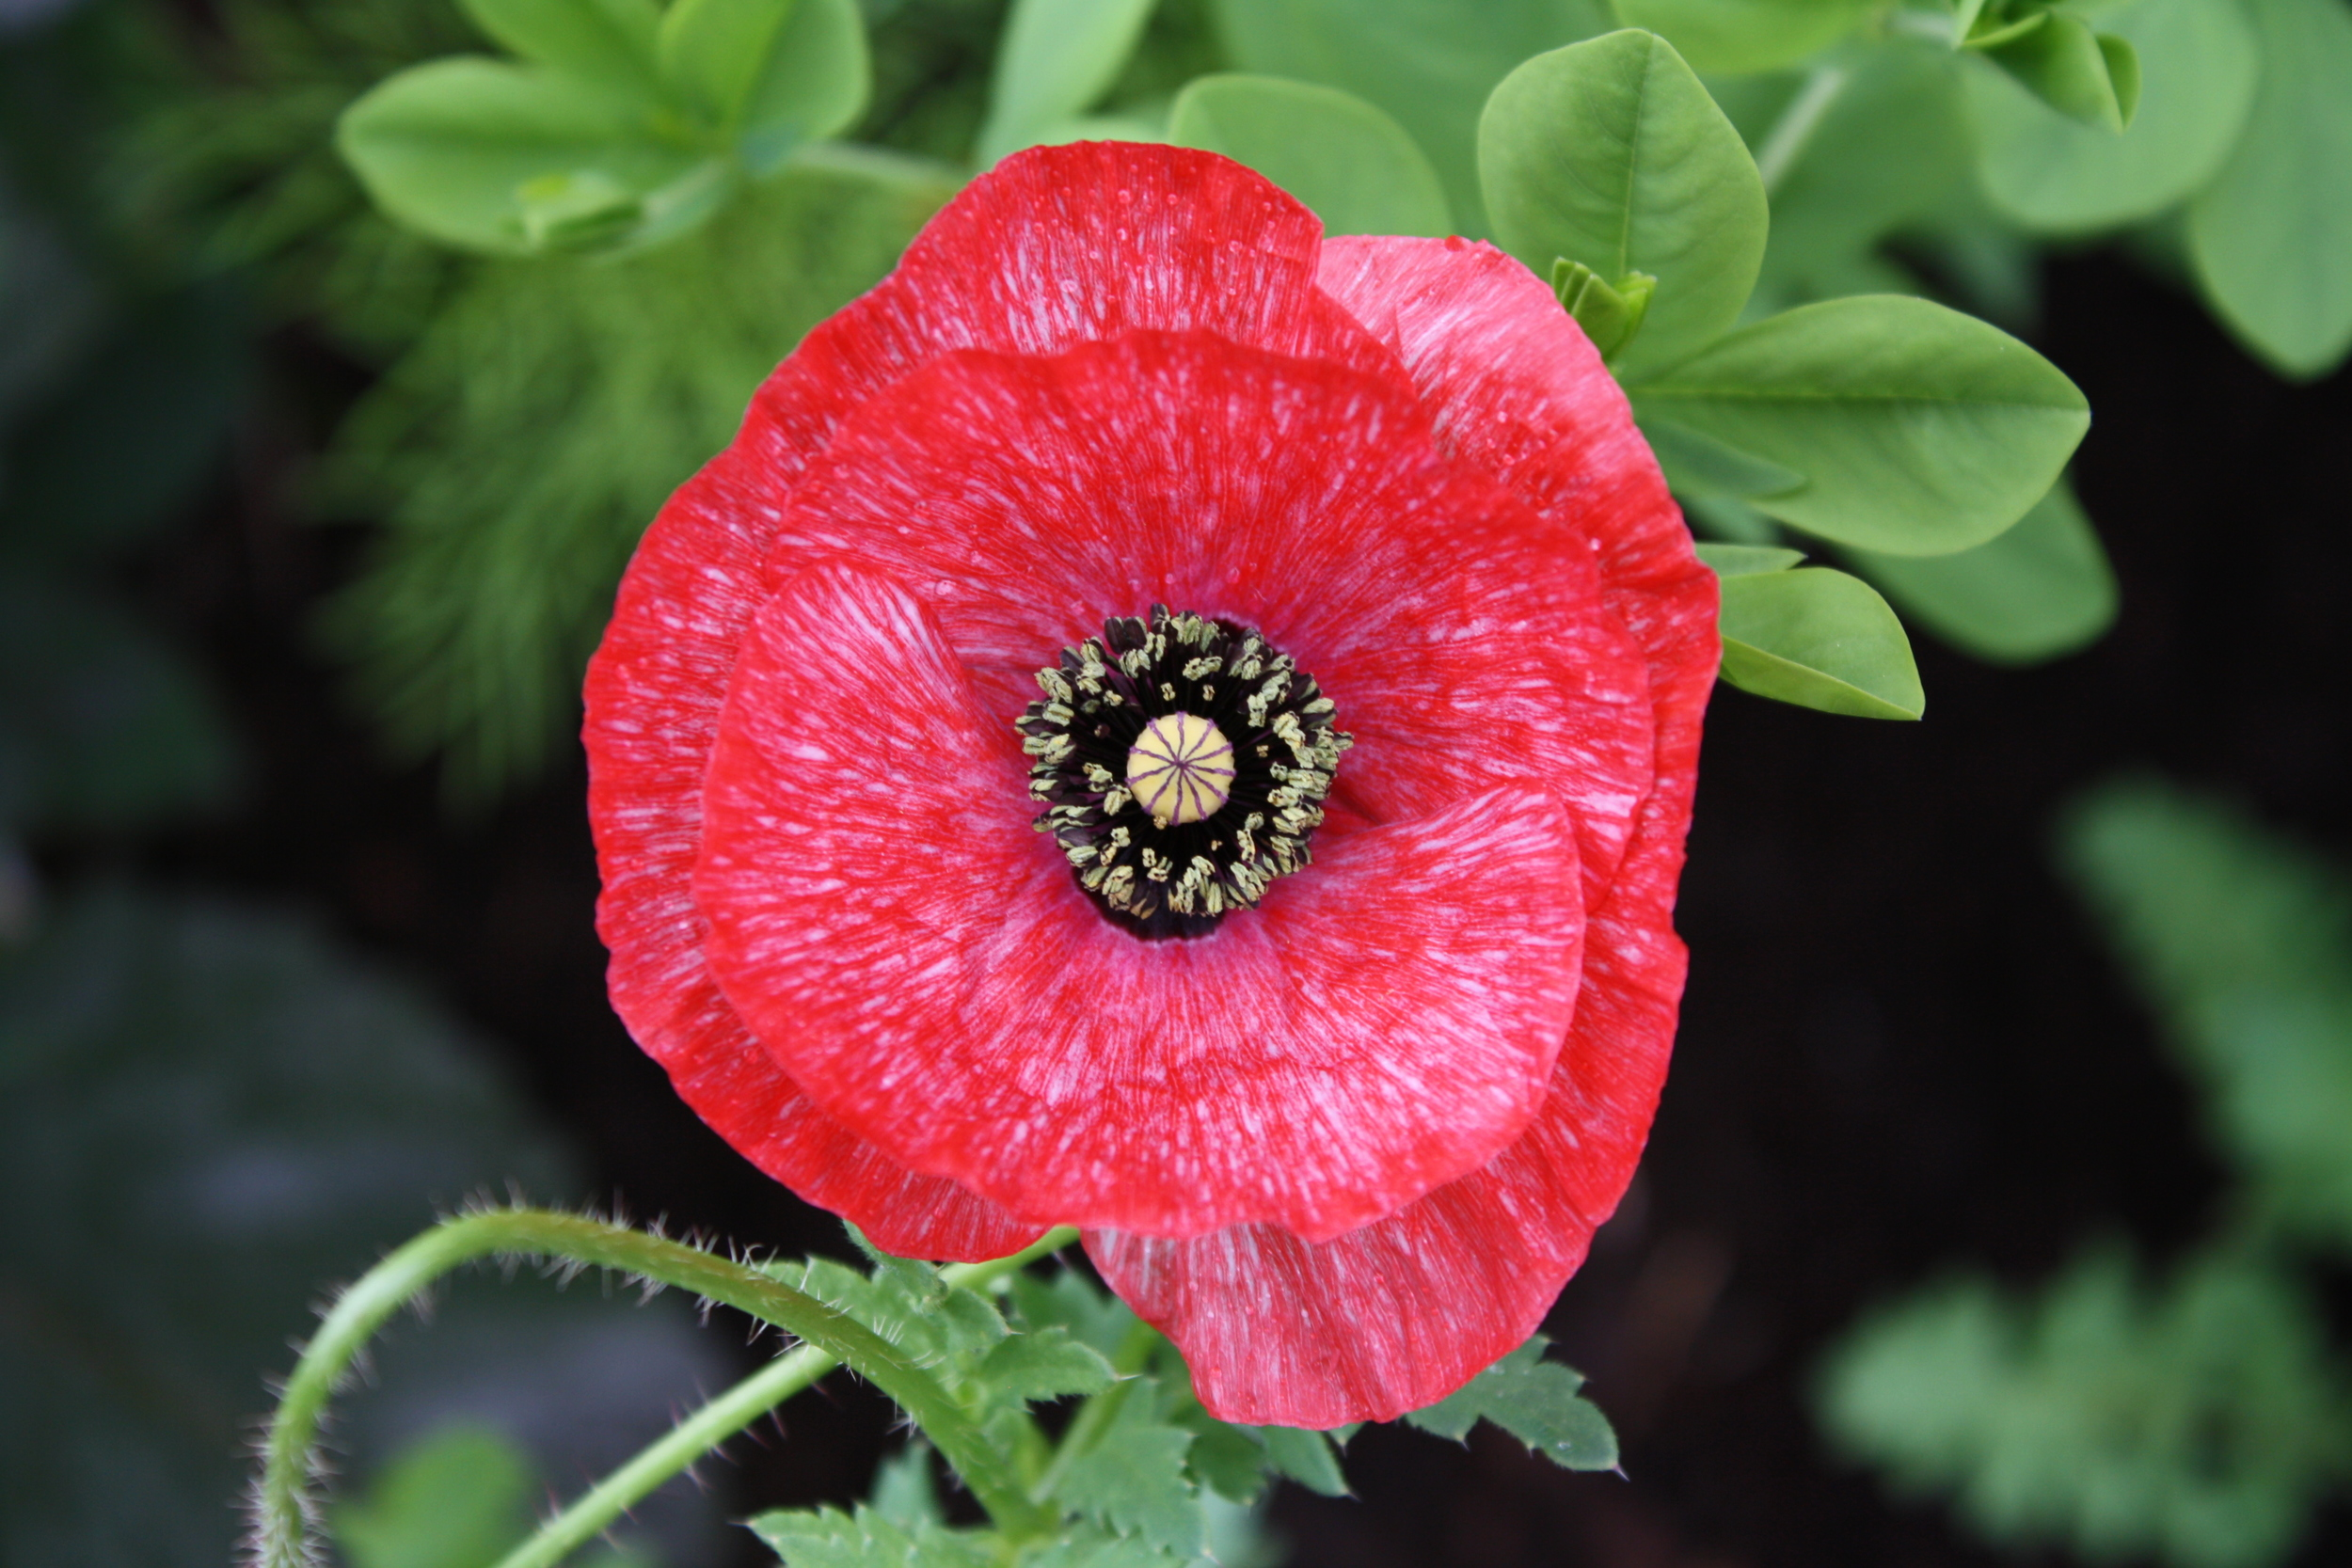 First bloom 'Mother of Pearl' poppies